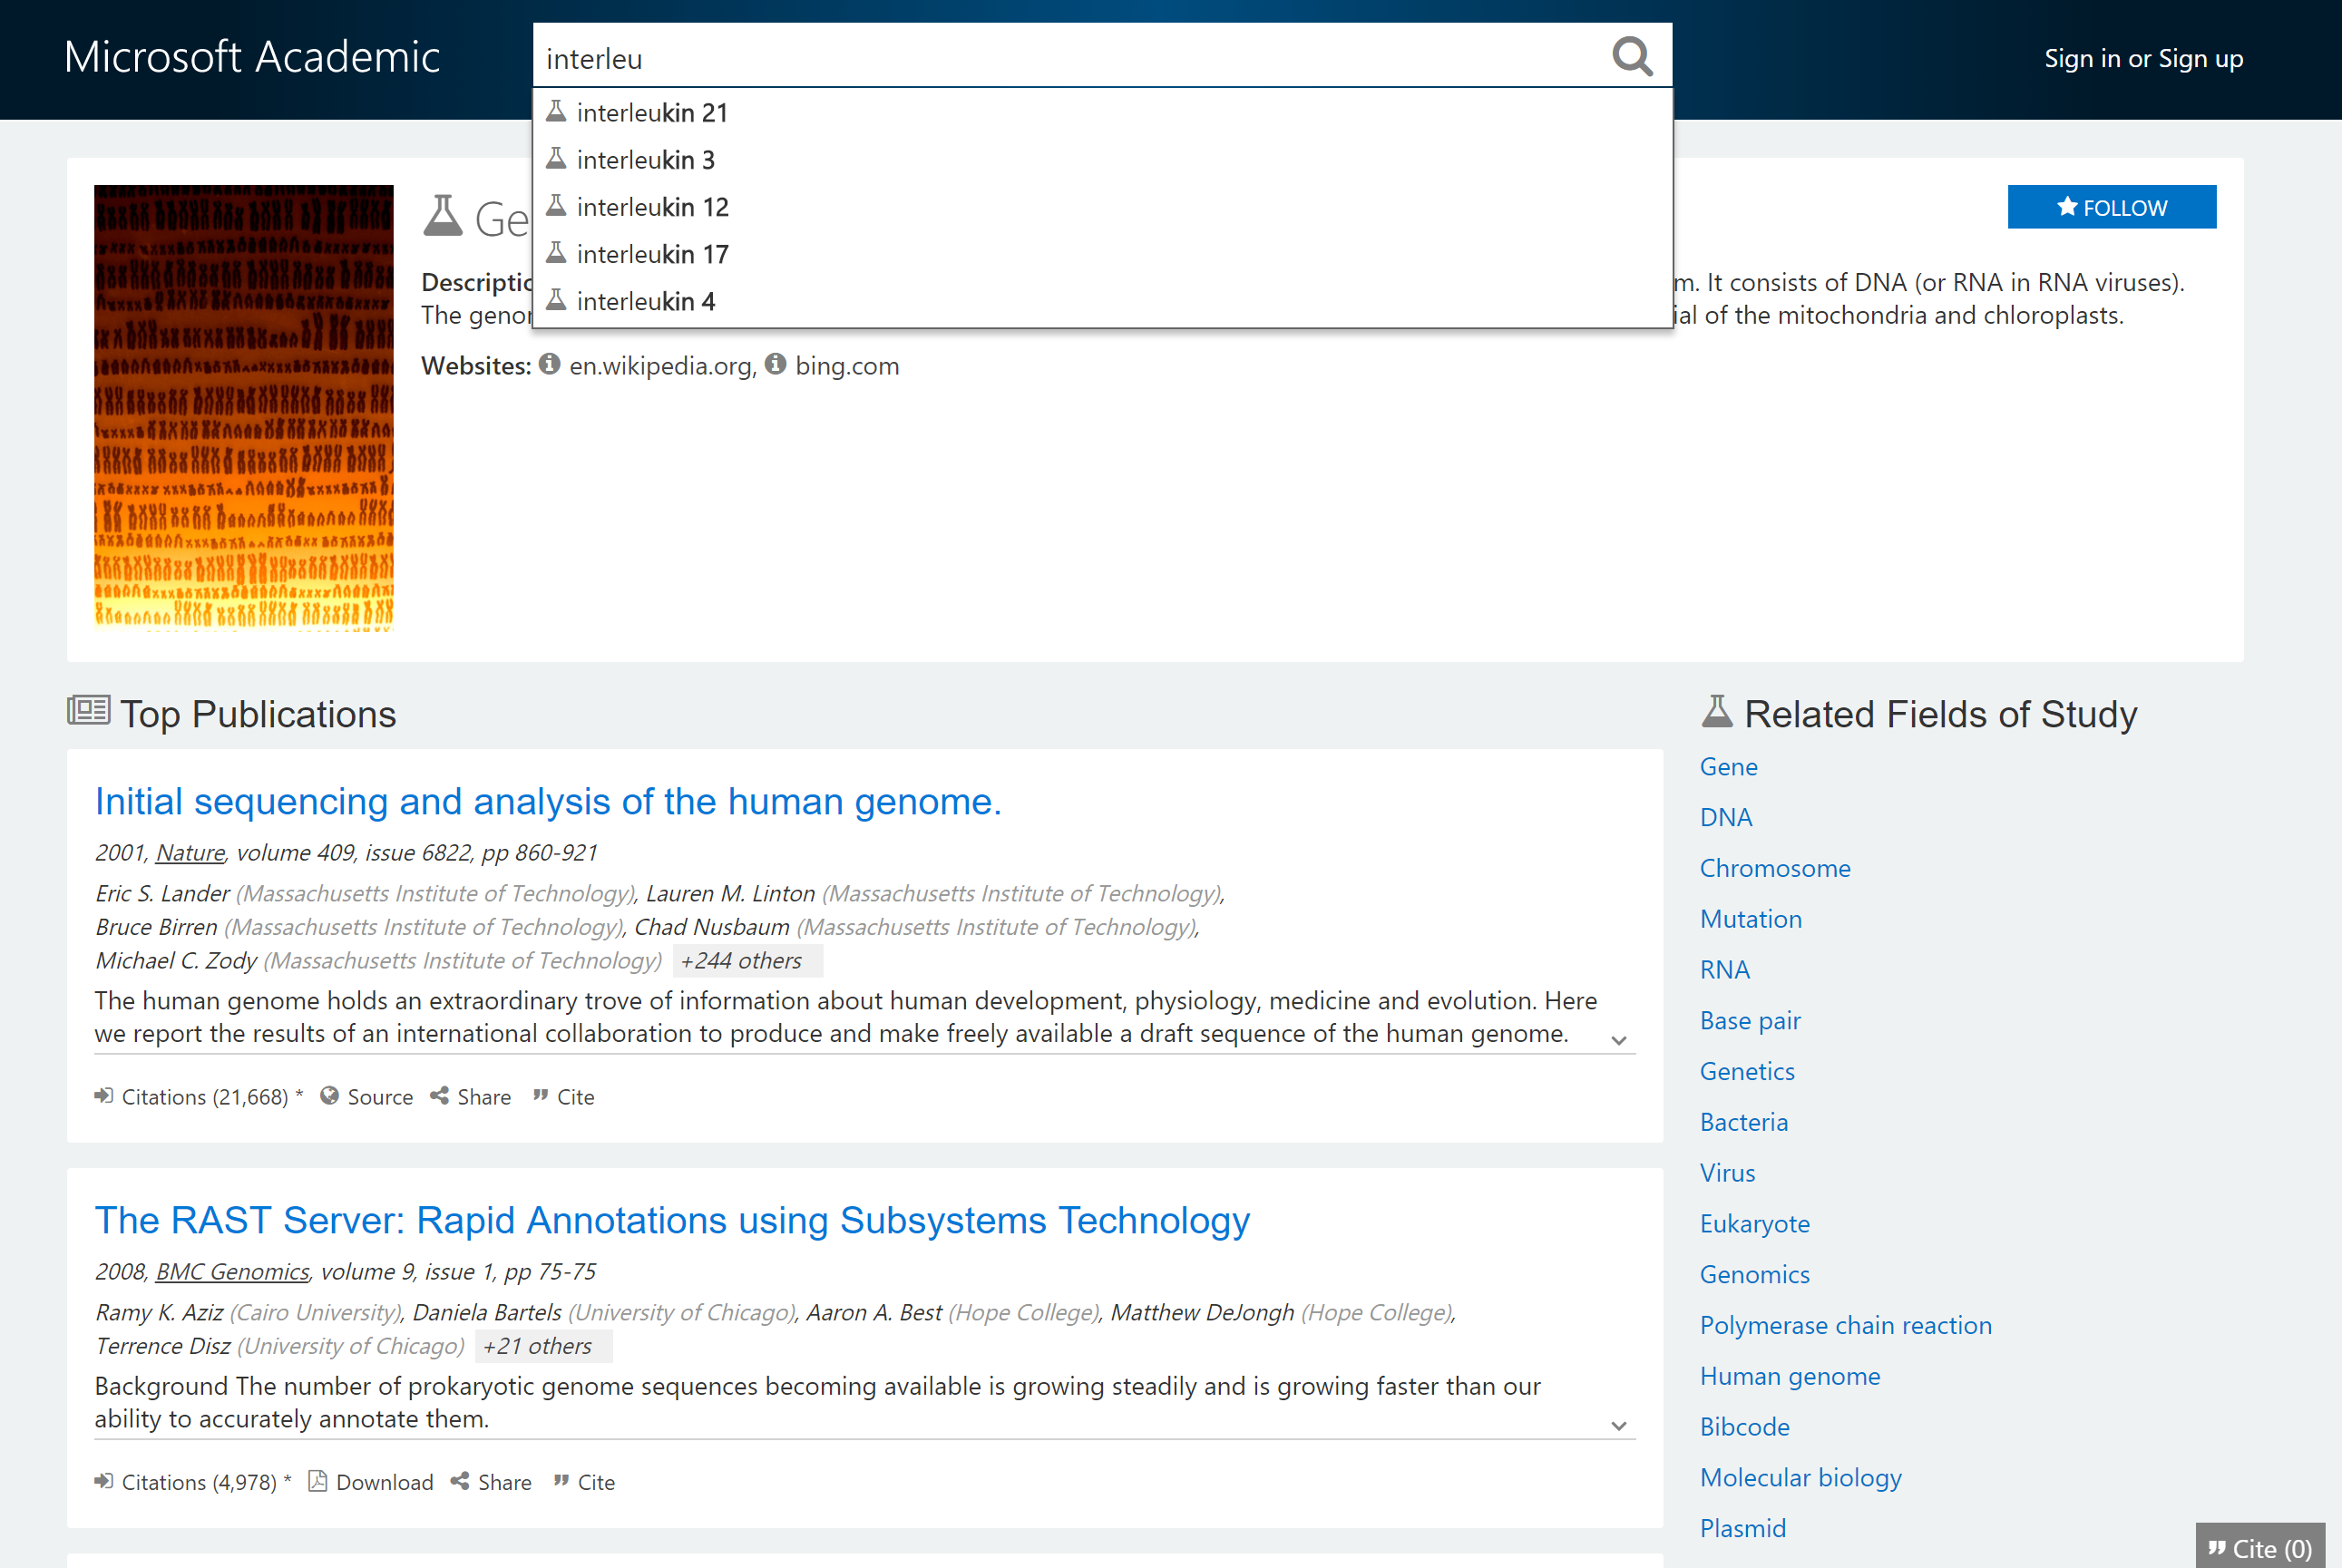 Microsoft Academic Increases Power Of Semantic Search By Adding More